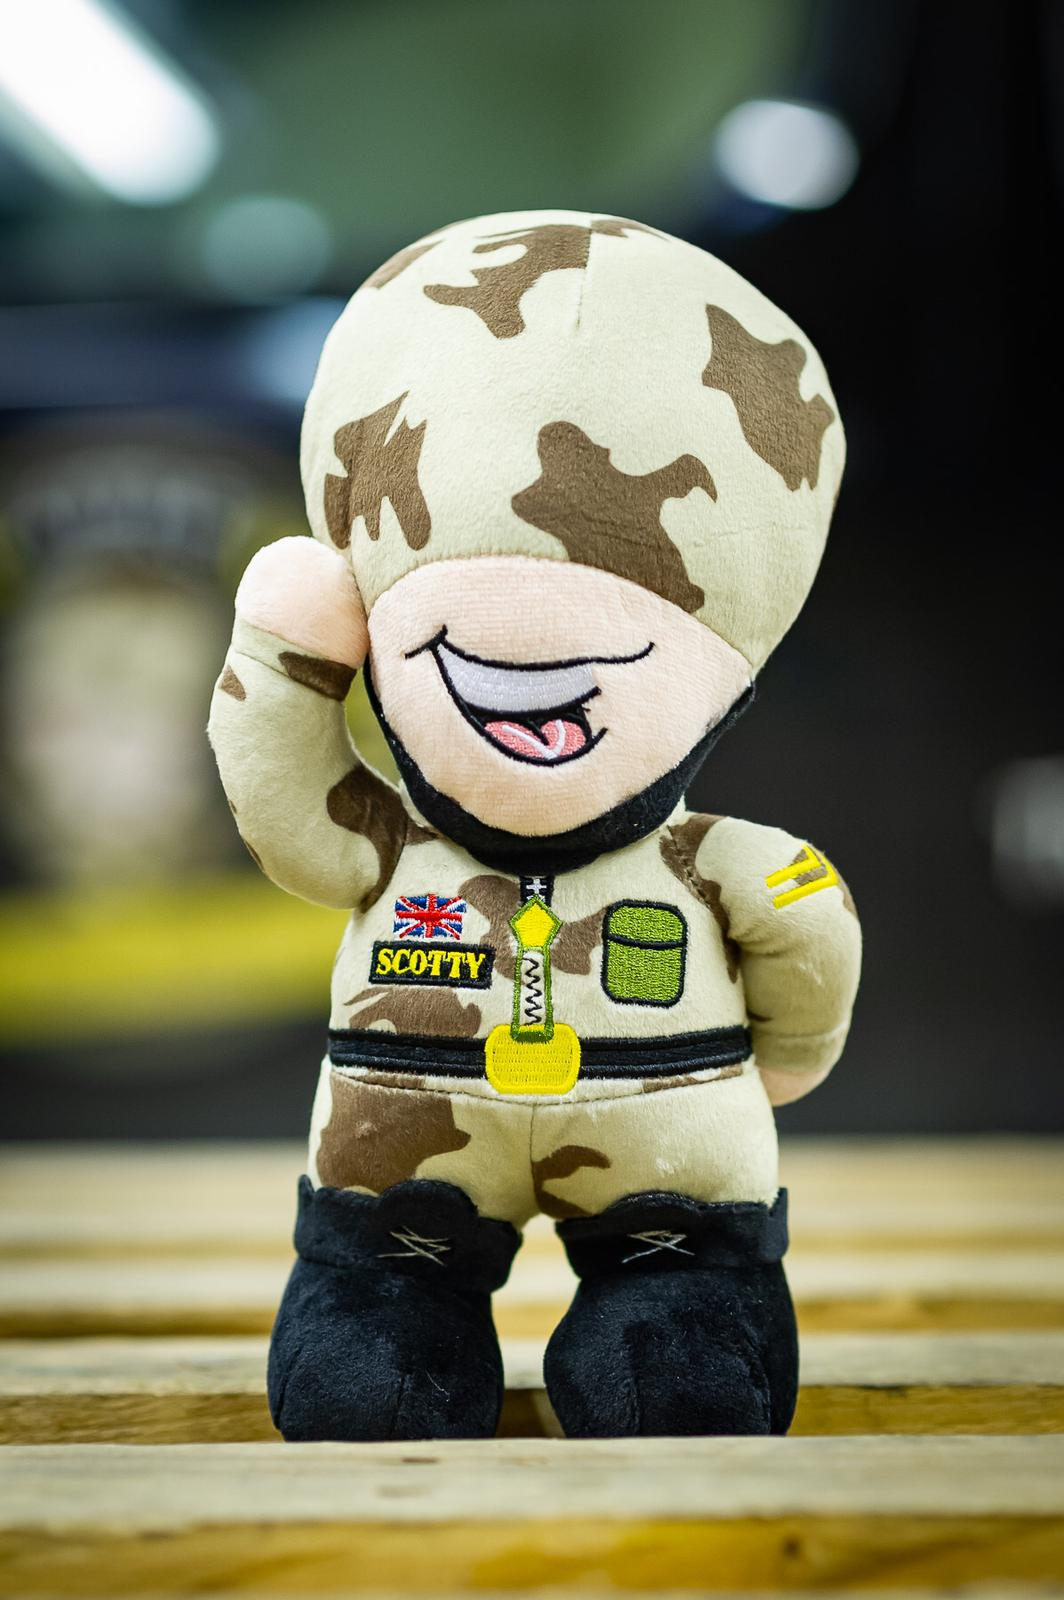 Image of Scotty Mascot